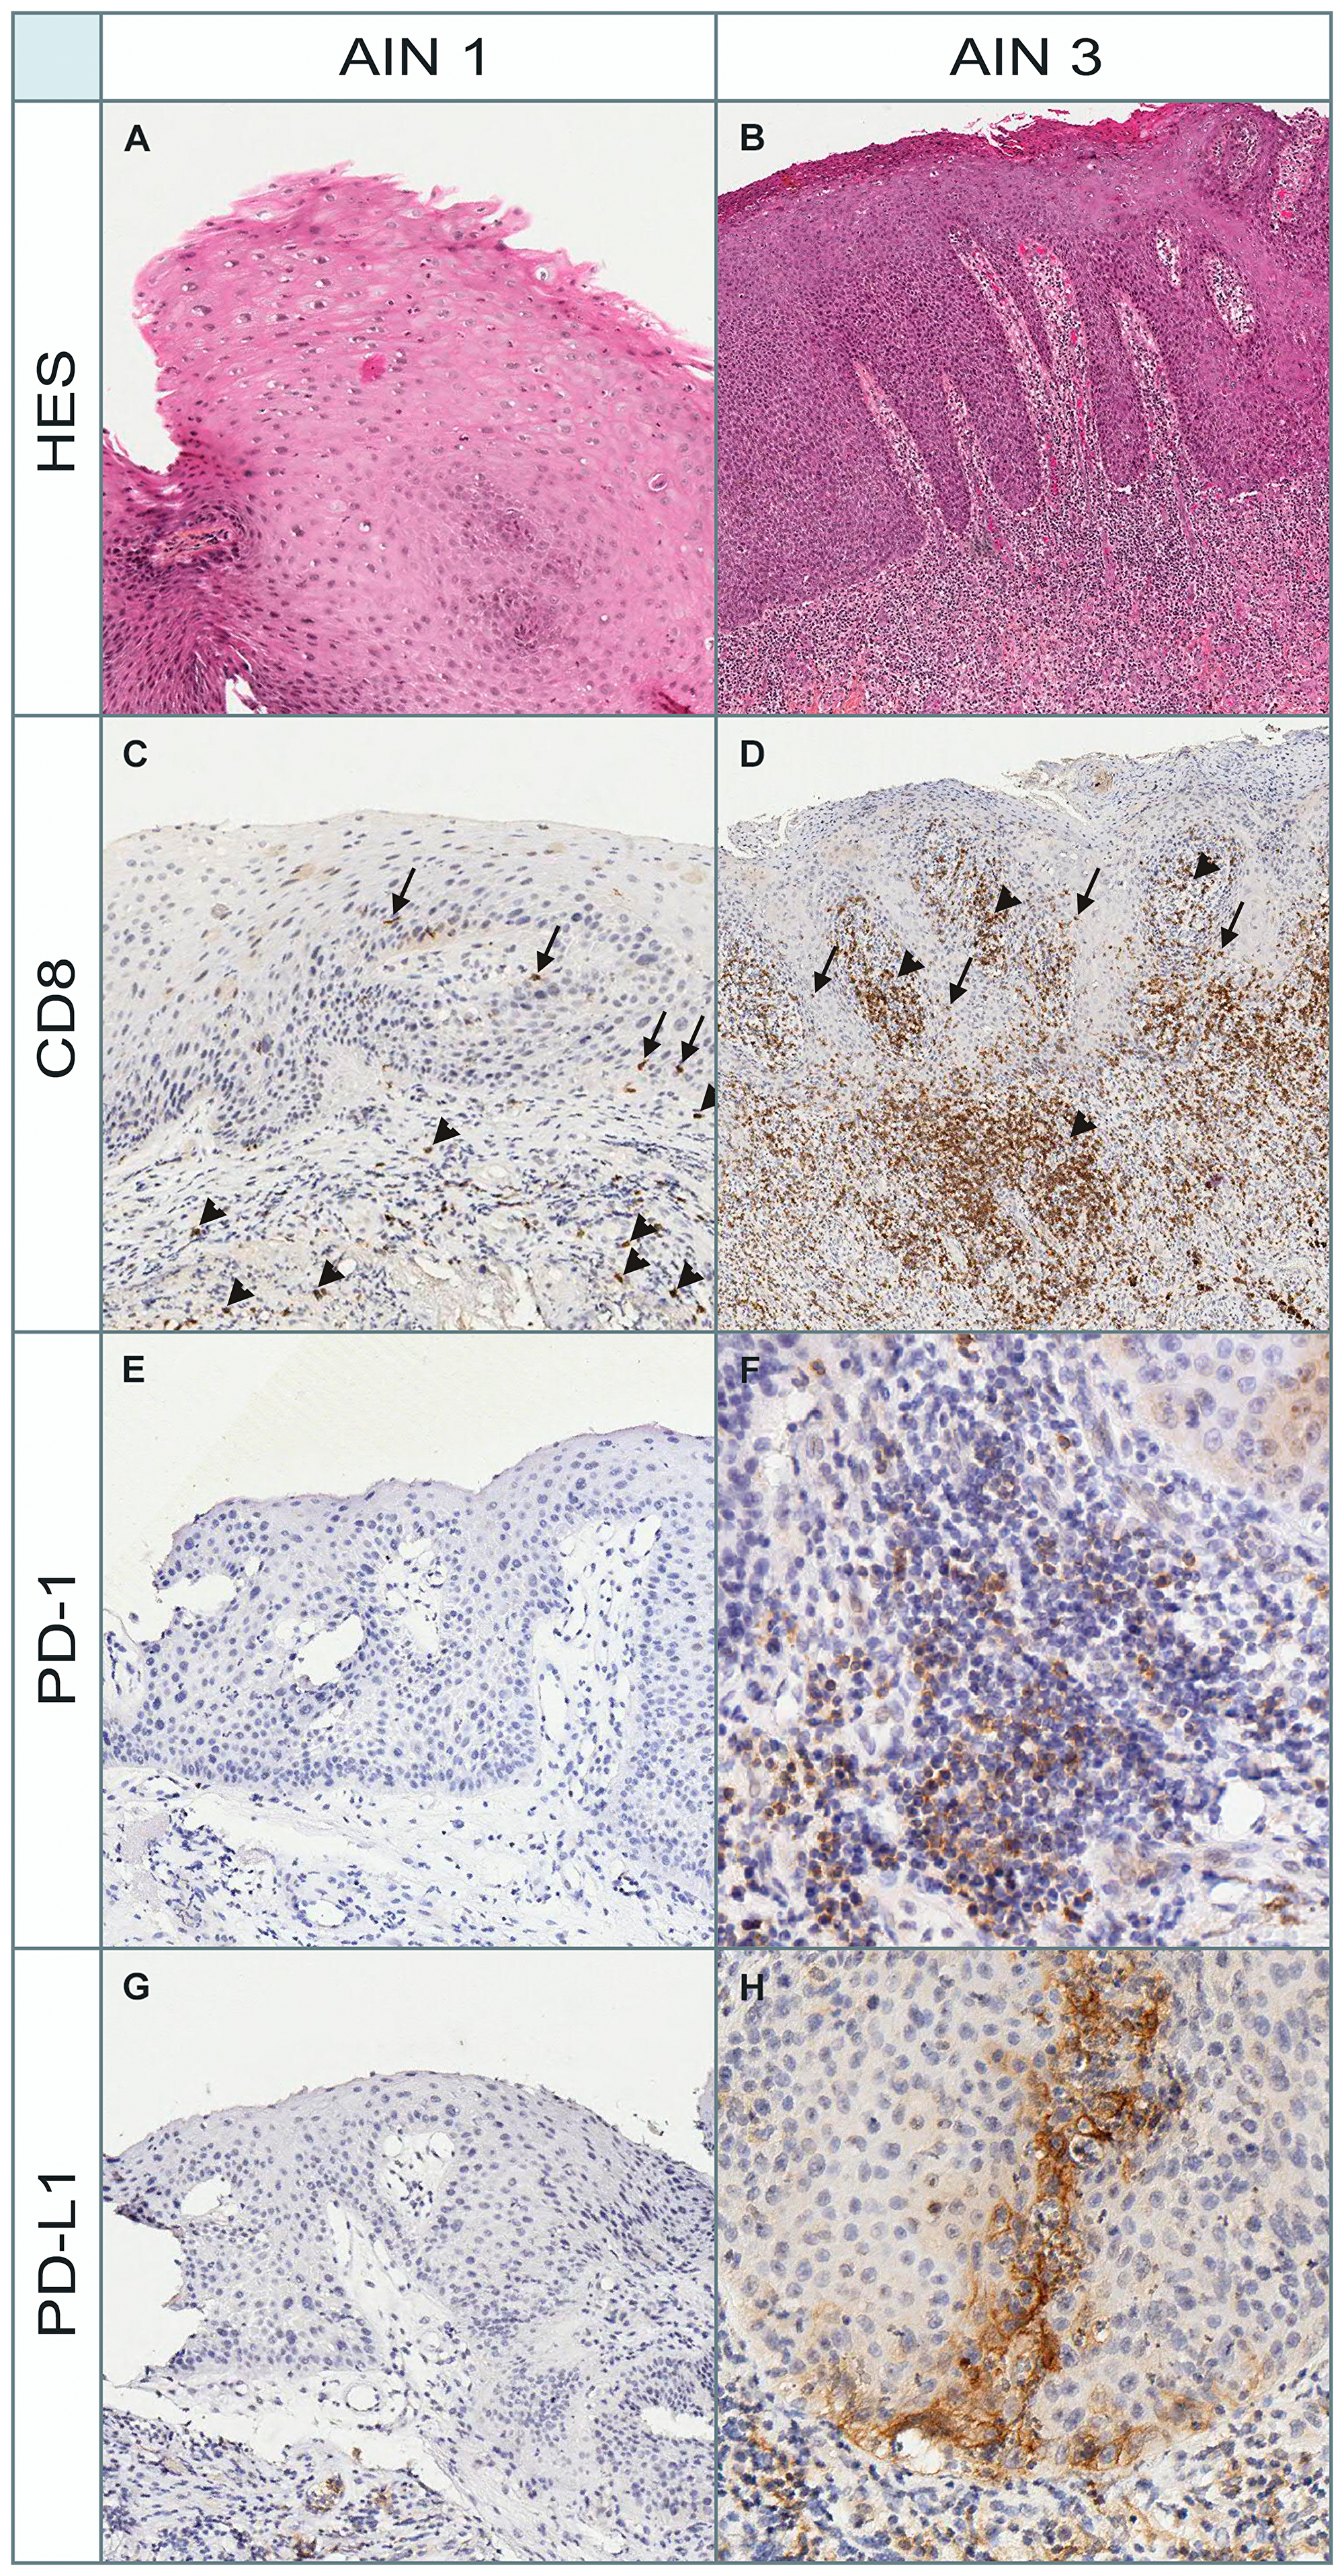 Morphological and immunohistochemical (PD-1, PD-L1, and CD8) aspects in a patient with AIN1 and AIN3.